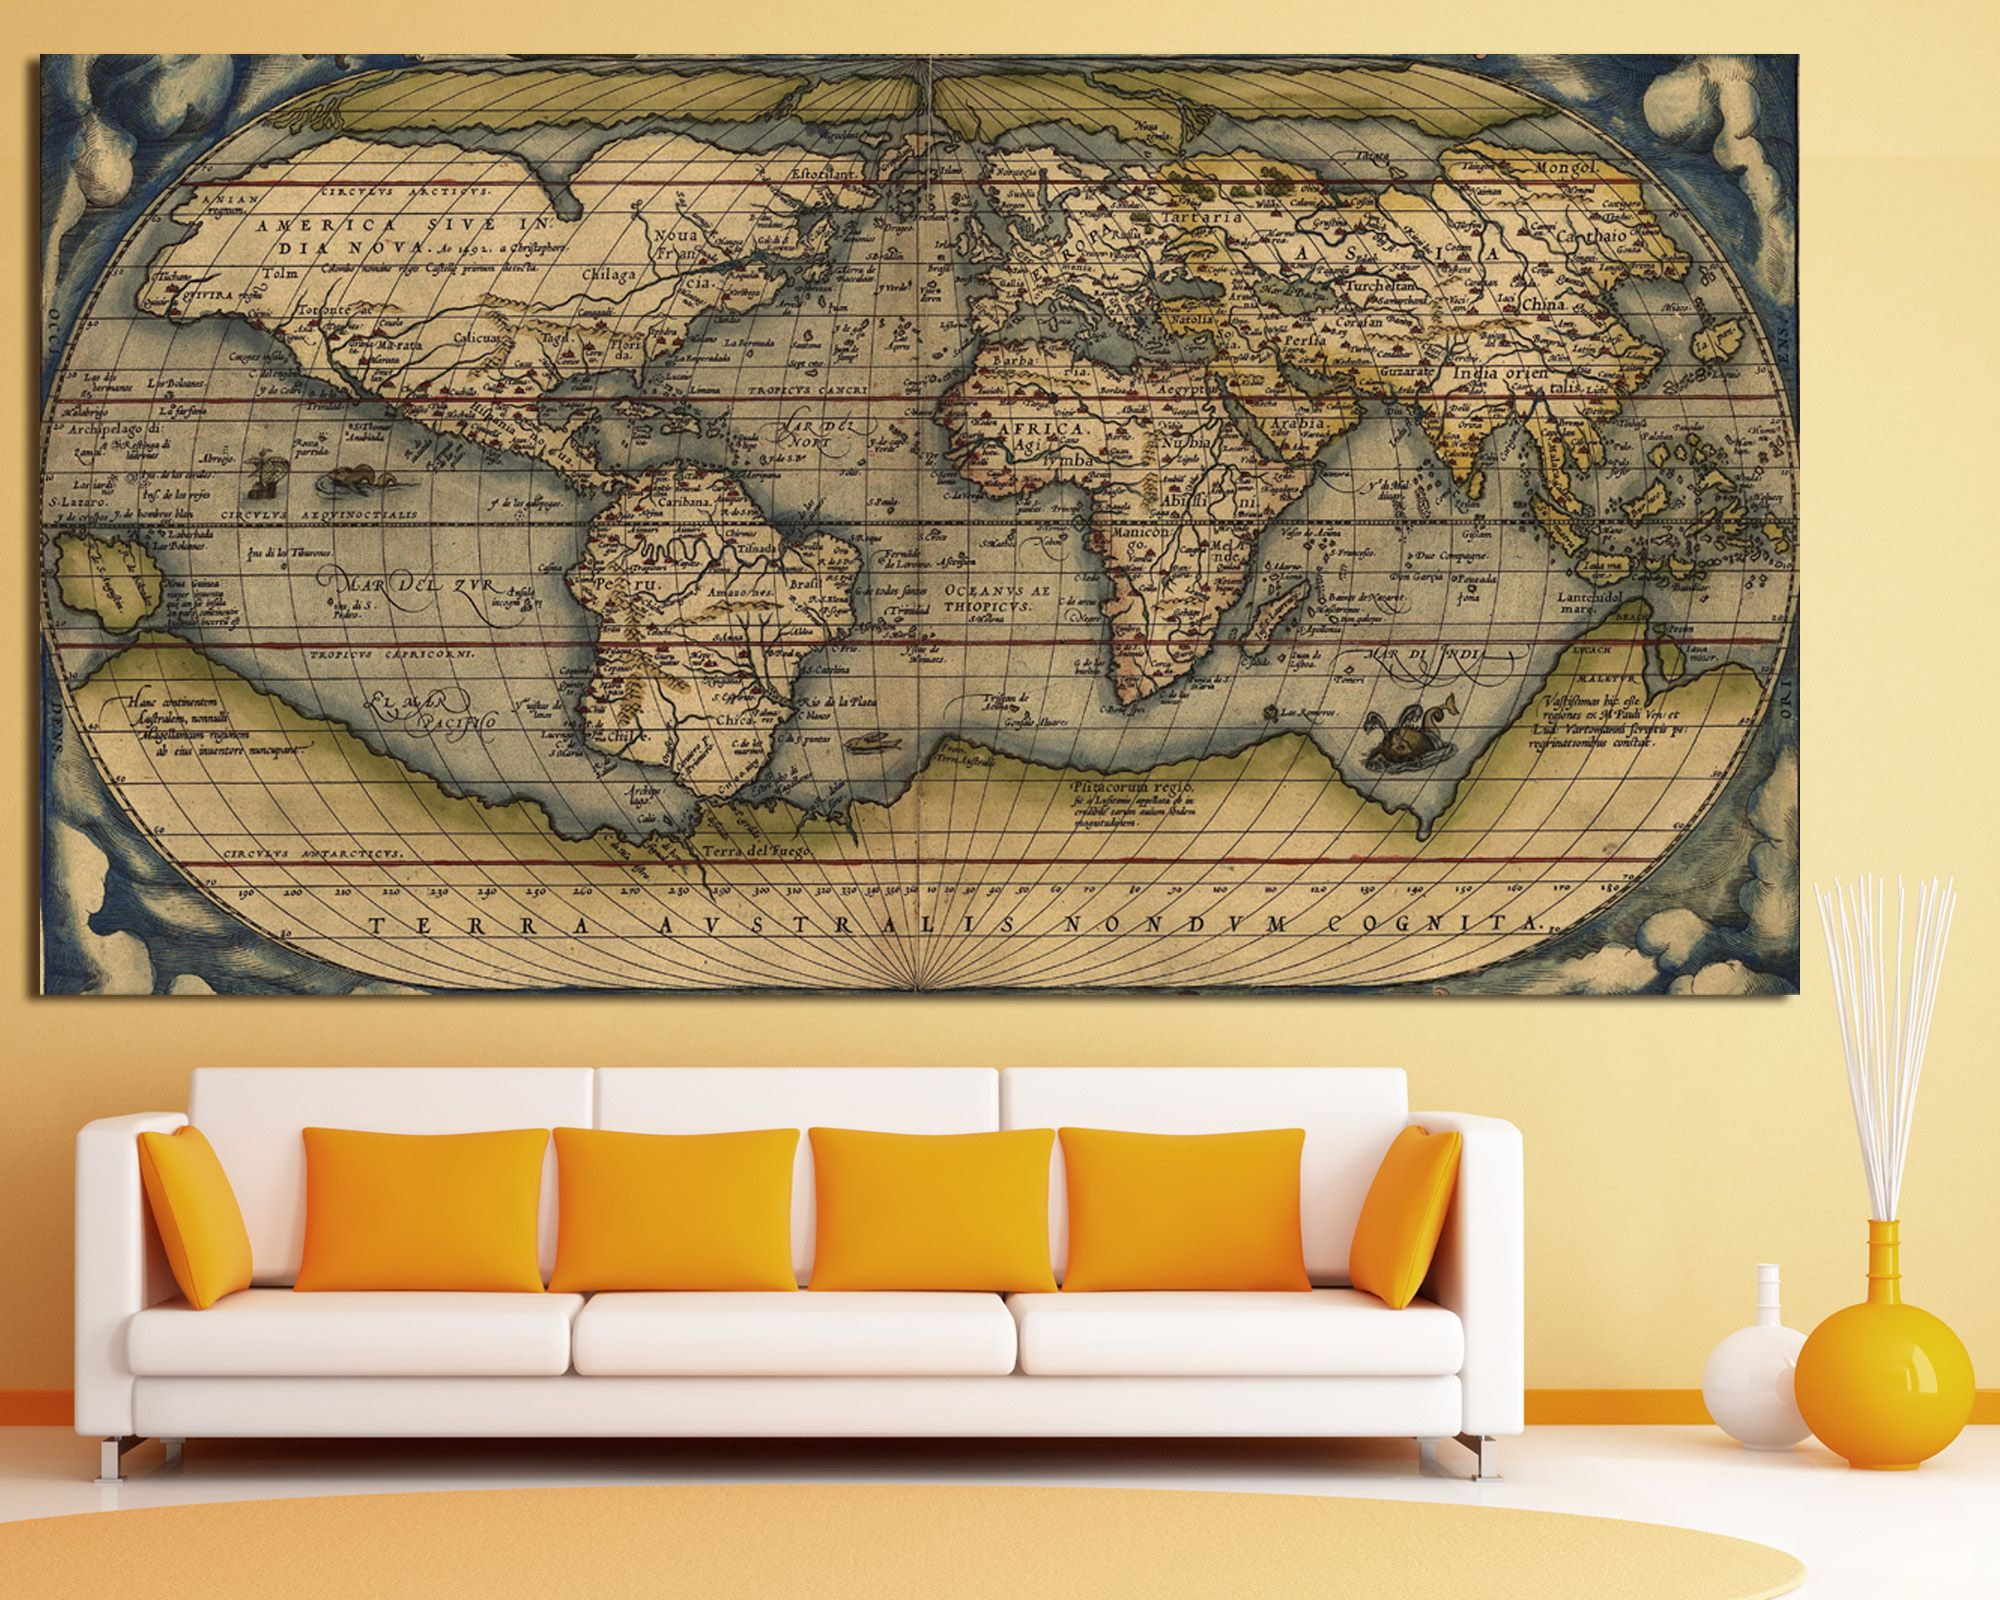 Buy now Antique world map wall art